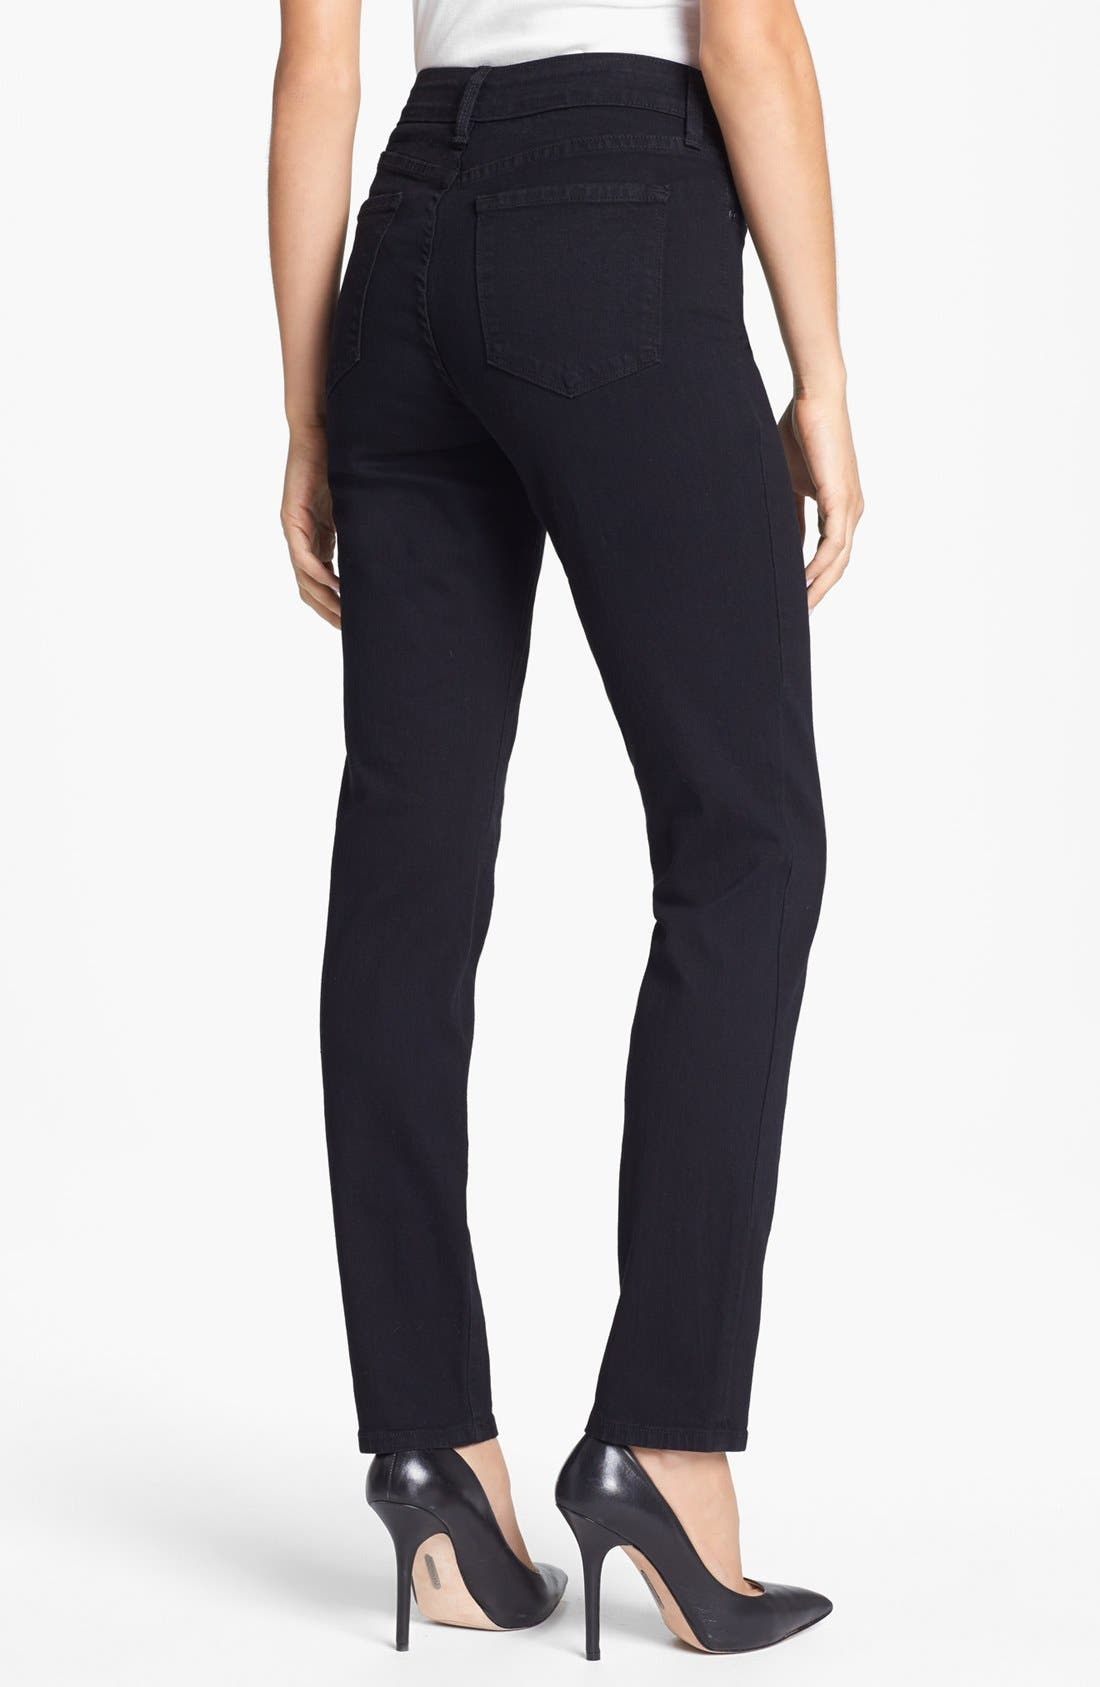 Alternate Image 2  - NYDJ 'Alina' Stretch Skinny Jeans (Black)